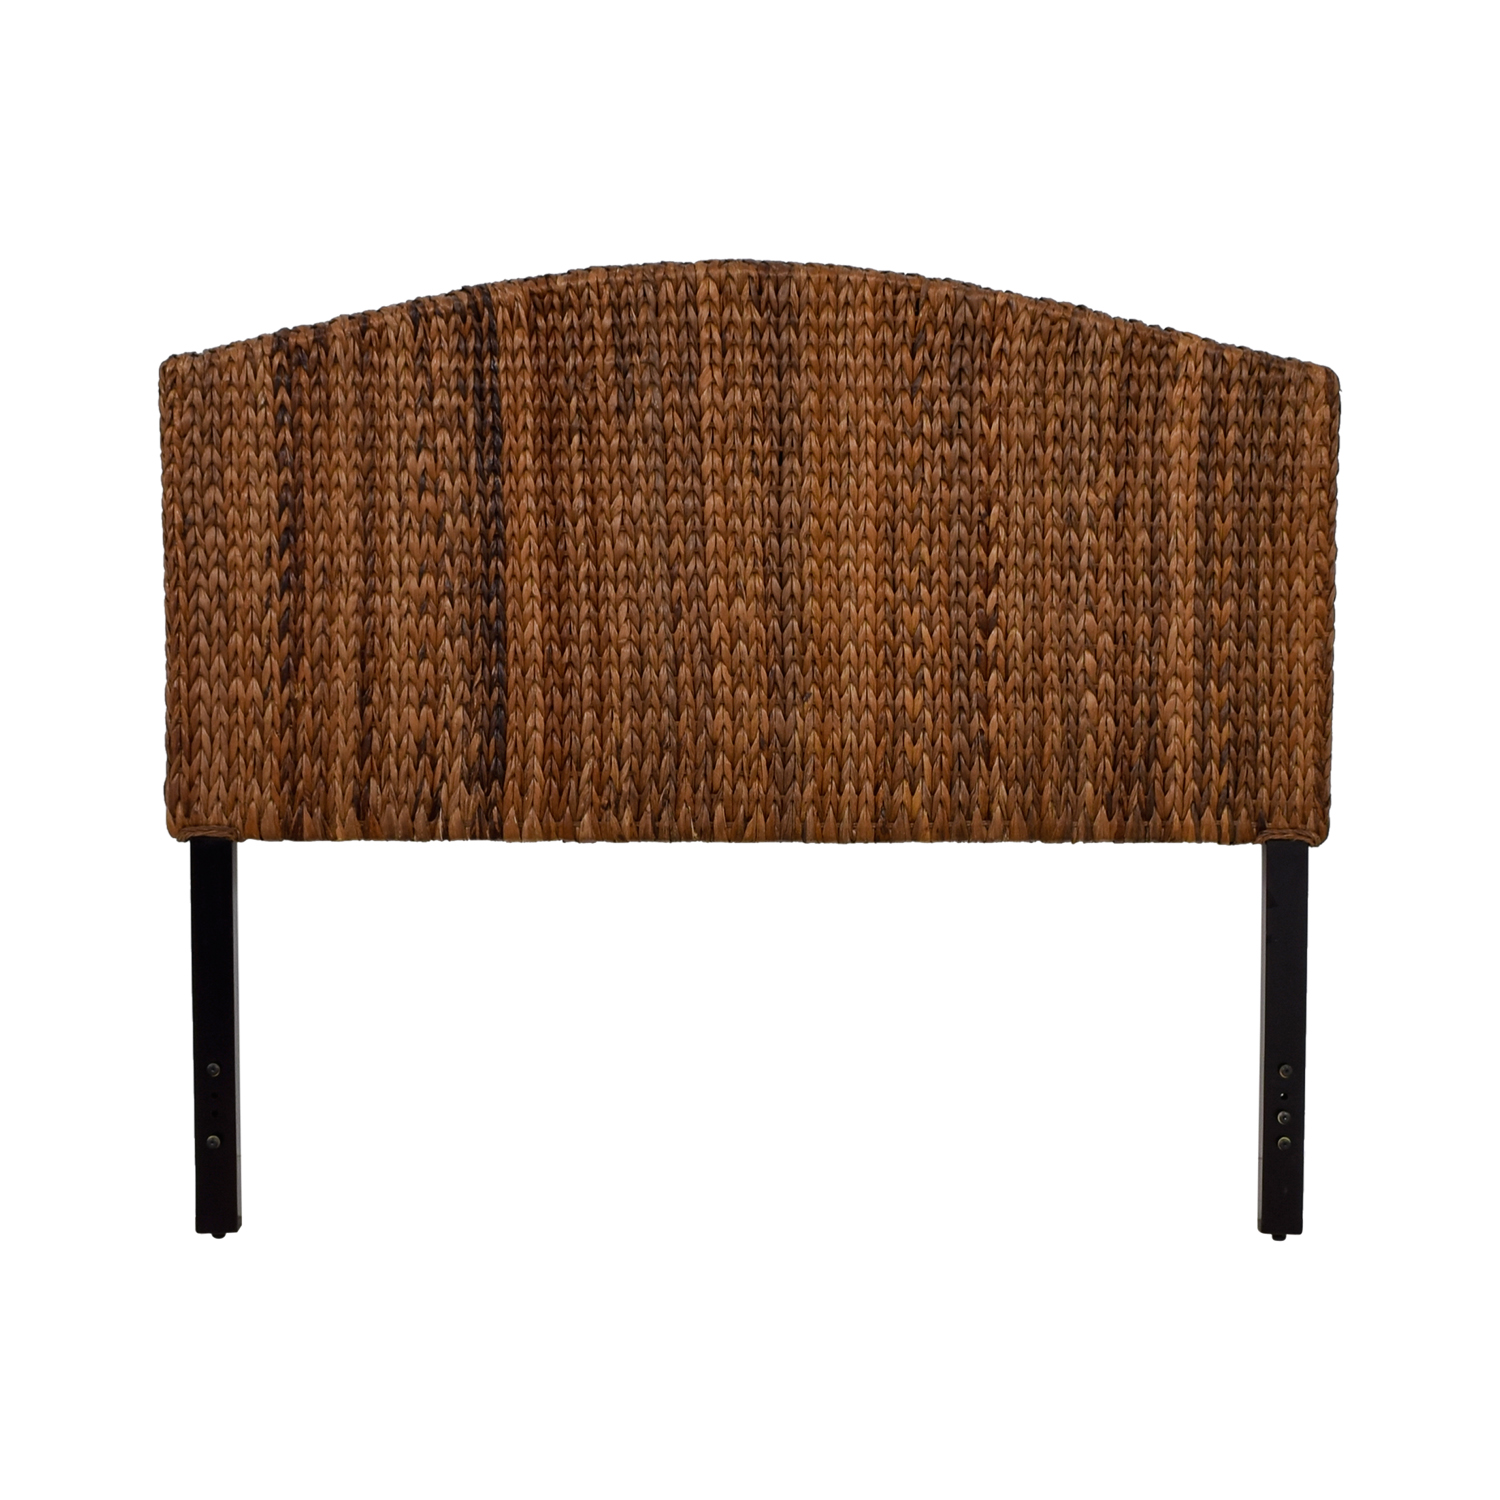 buy Espresso Banana Leaf Woven Queen Headboard  Headboards